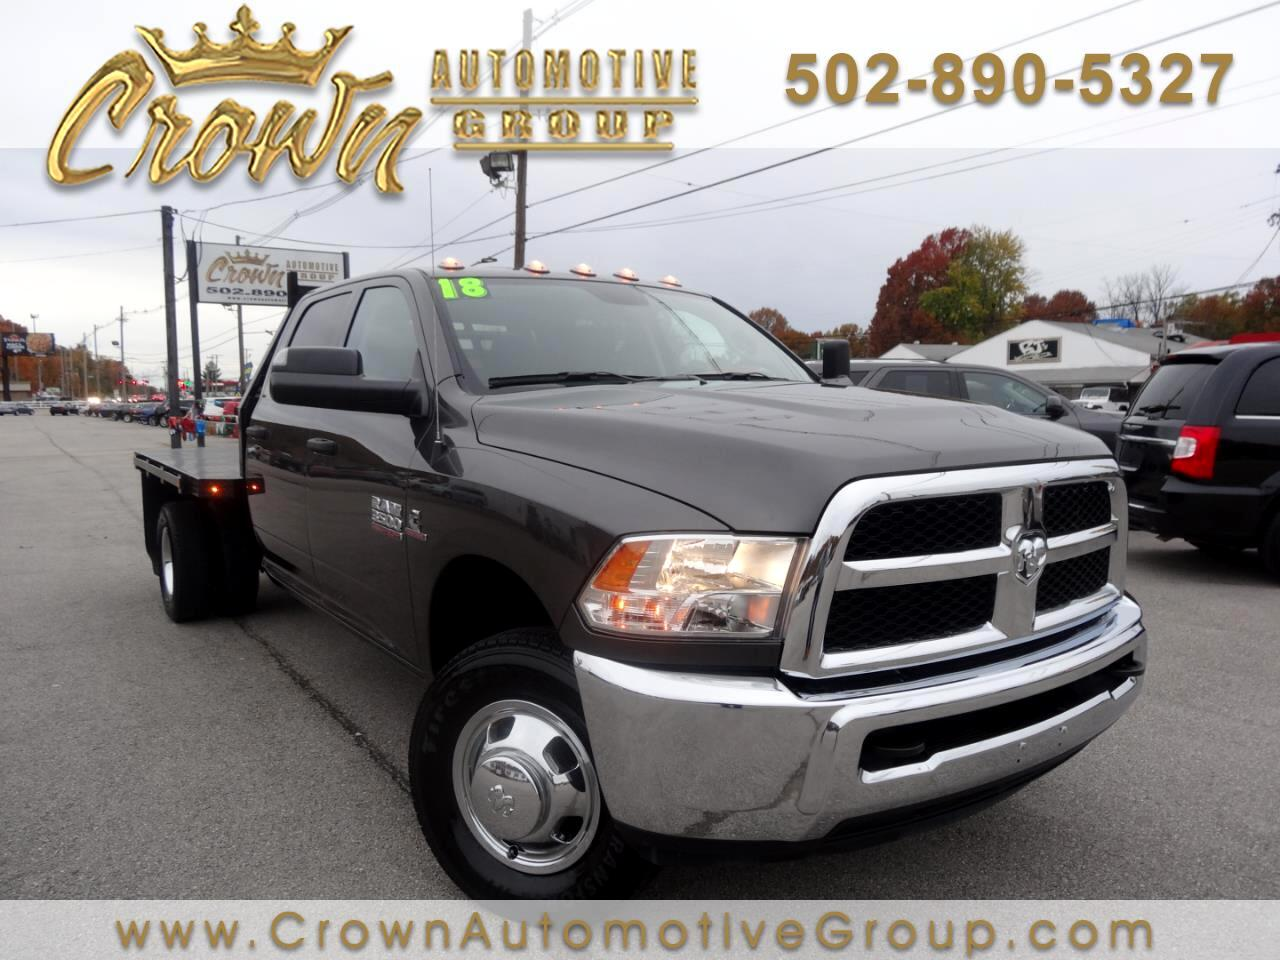 2018 RAM 3500 Chassis Cab Tradesman 4WD Crew Cab 172